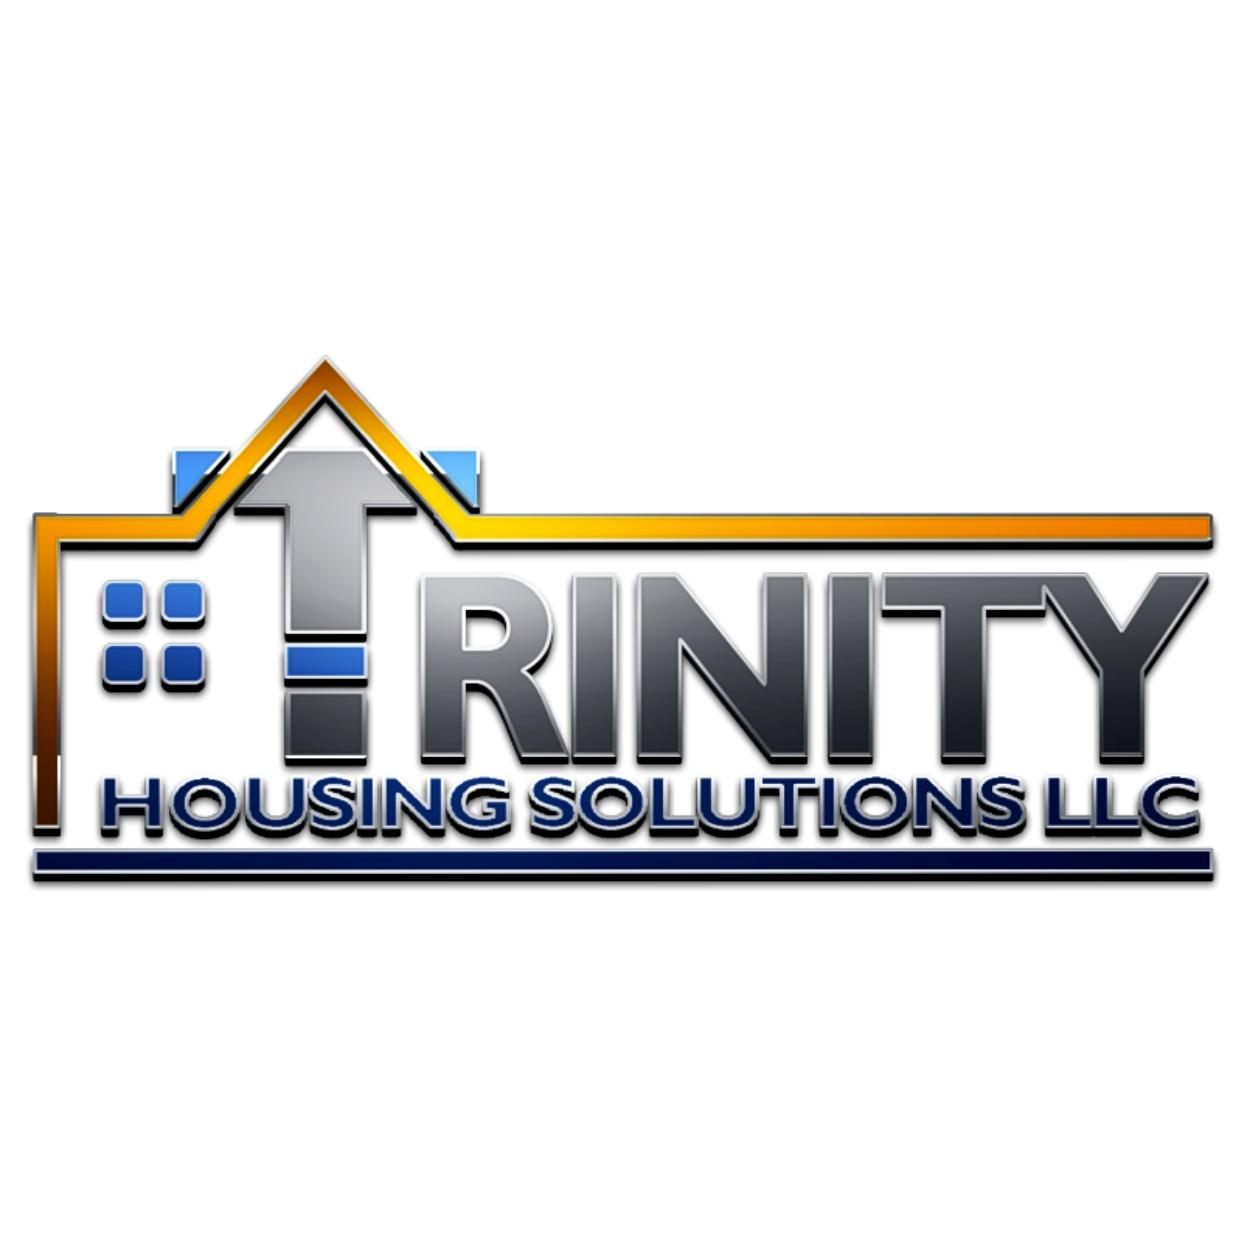 Trinity Housing Solutions, LLC